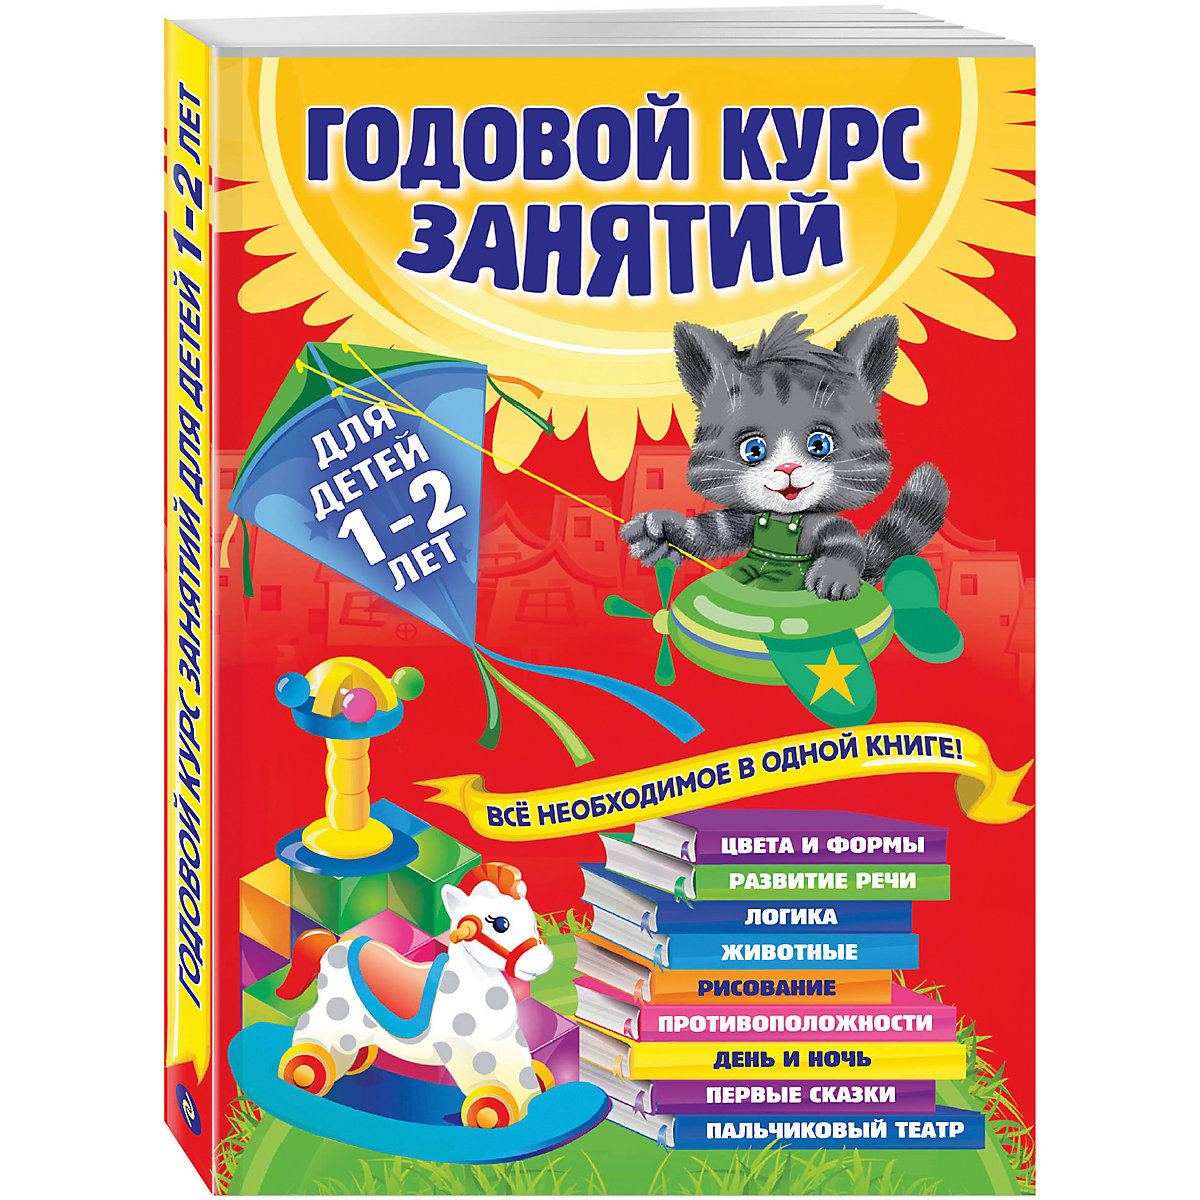 Books EKSMO 4355901 Children Education Encyclopedia Alphabet Dictionary Book For Baby MTpromo